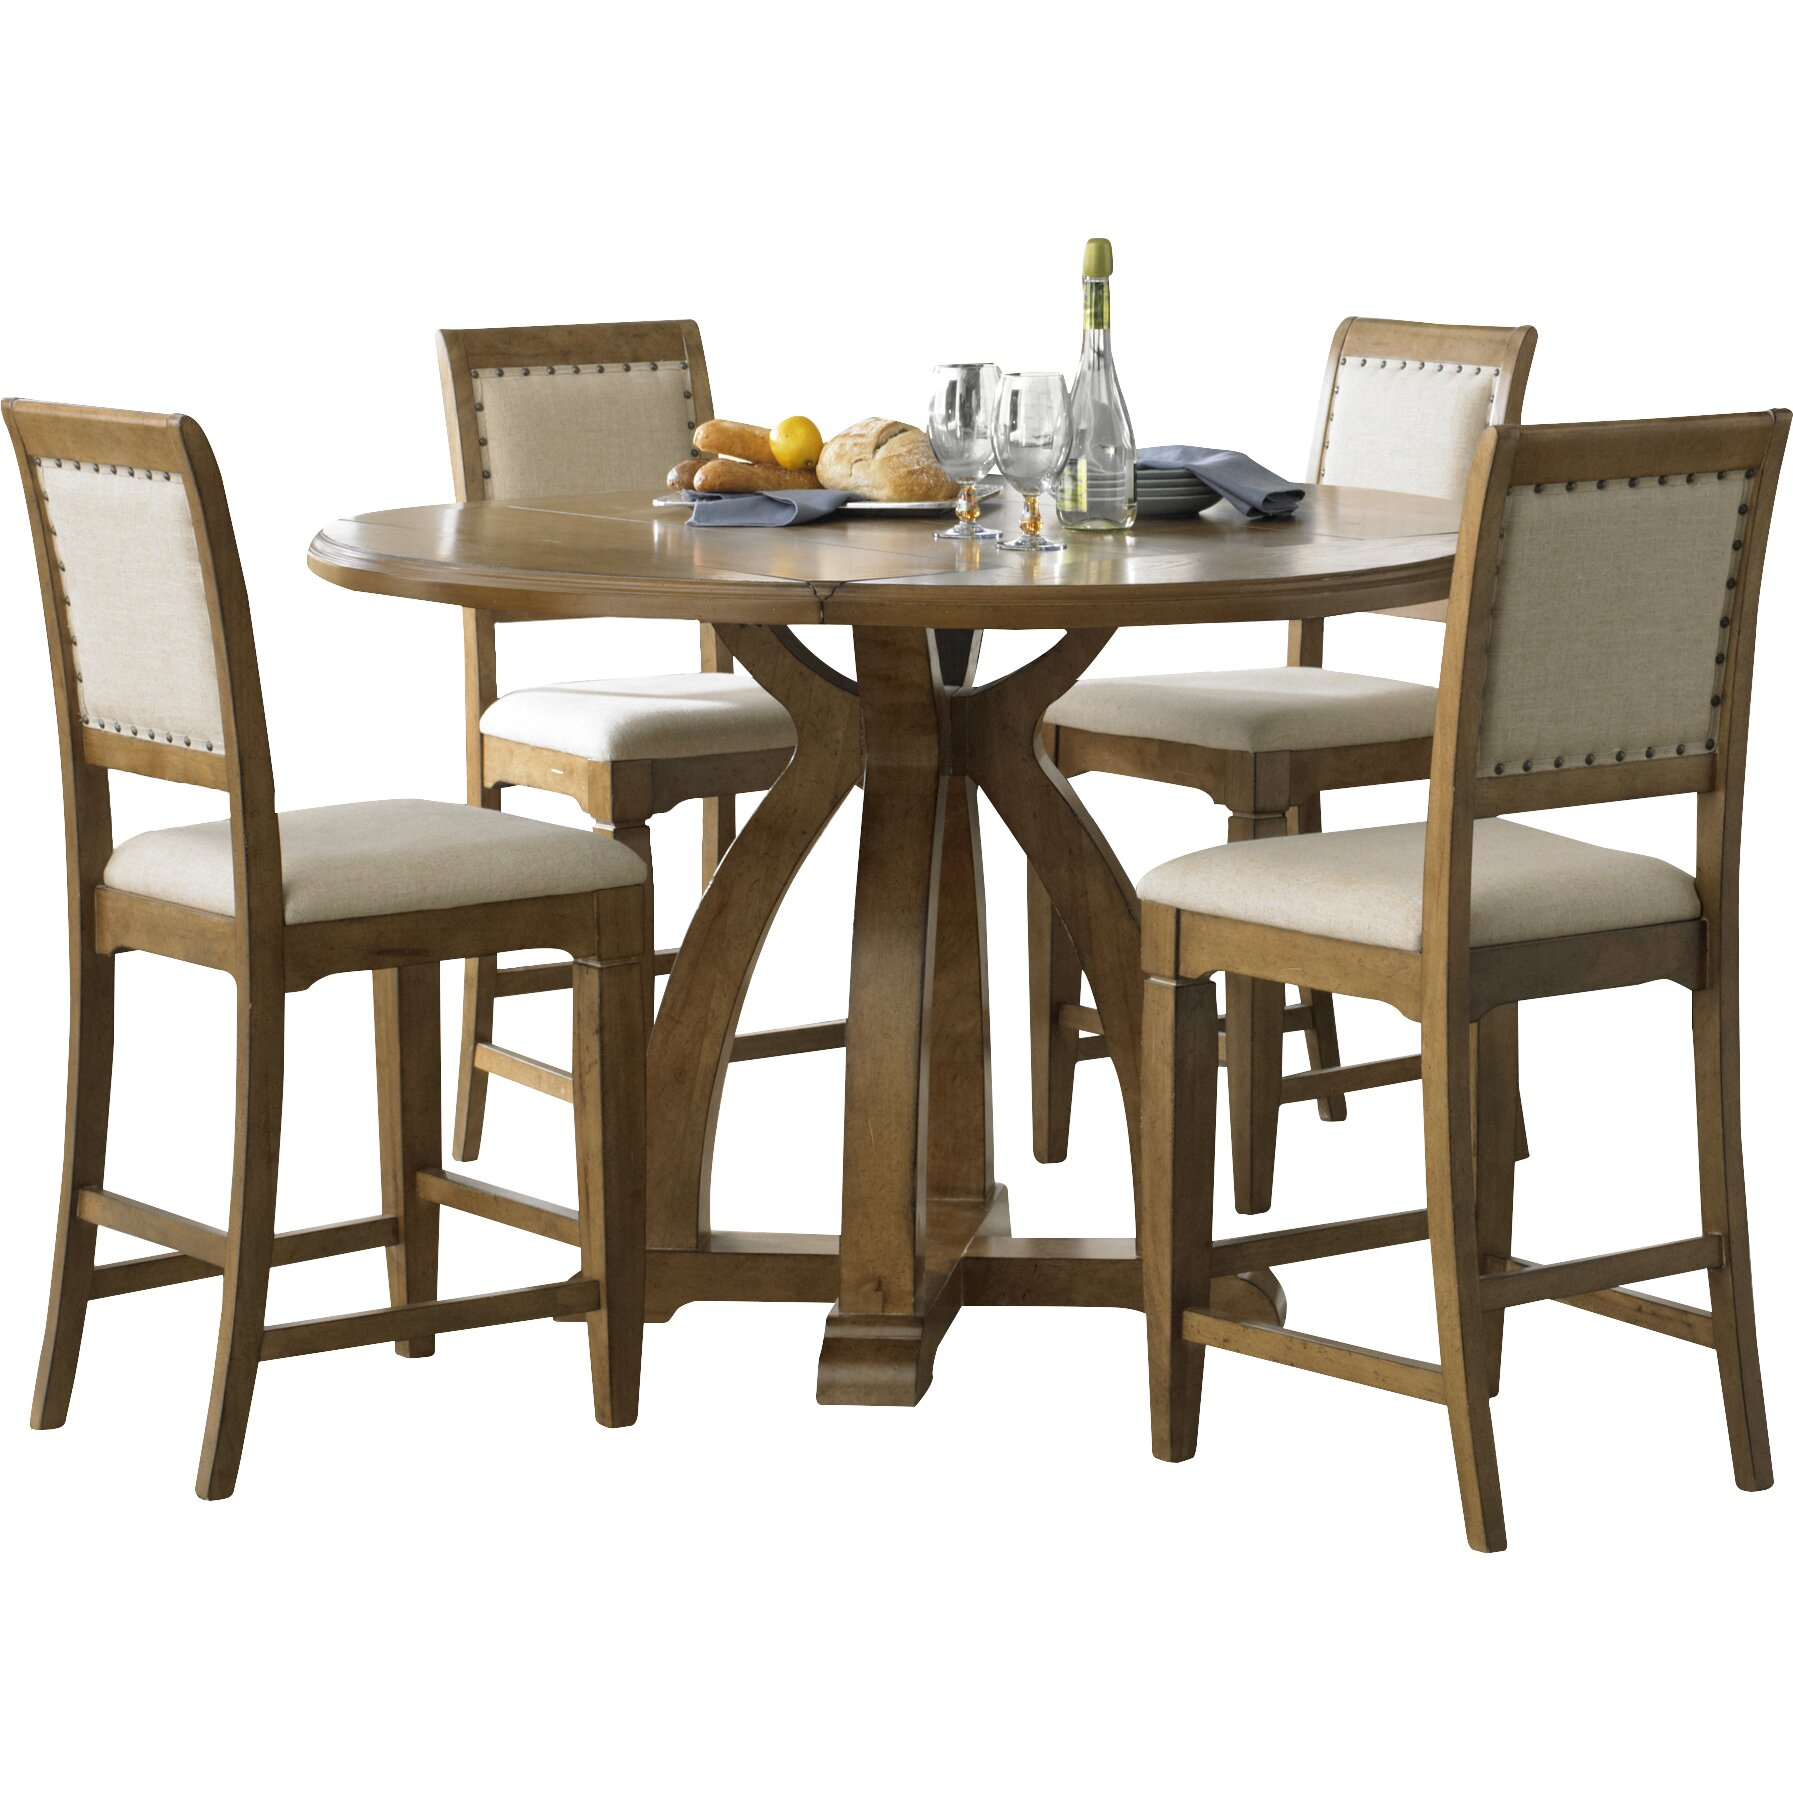 Carrie Dining Counter Height Table Base | Wayfair With Most Recently Released Counter Height Pedestal Dining Tables (View 13 of 15)